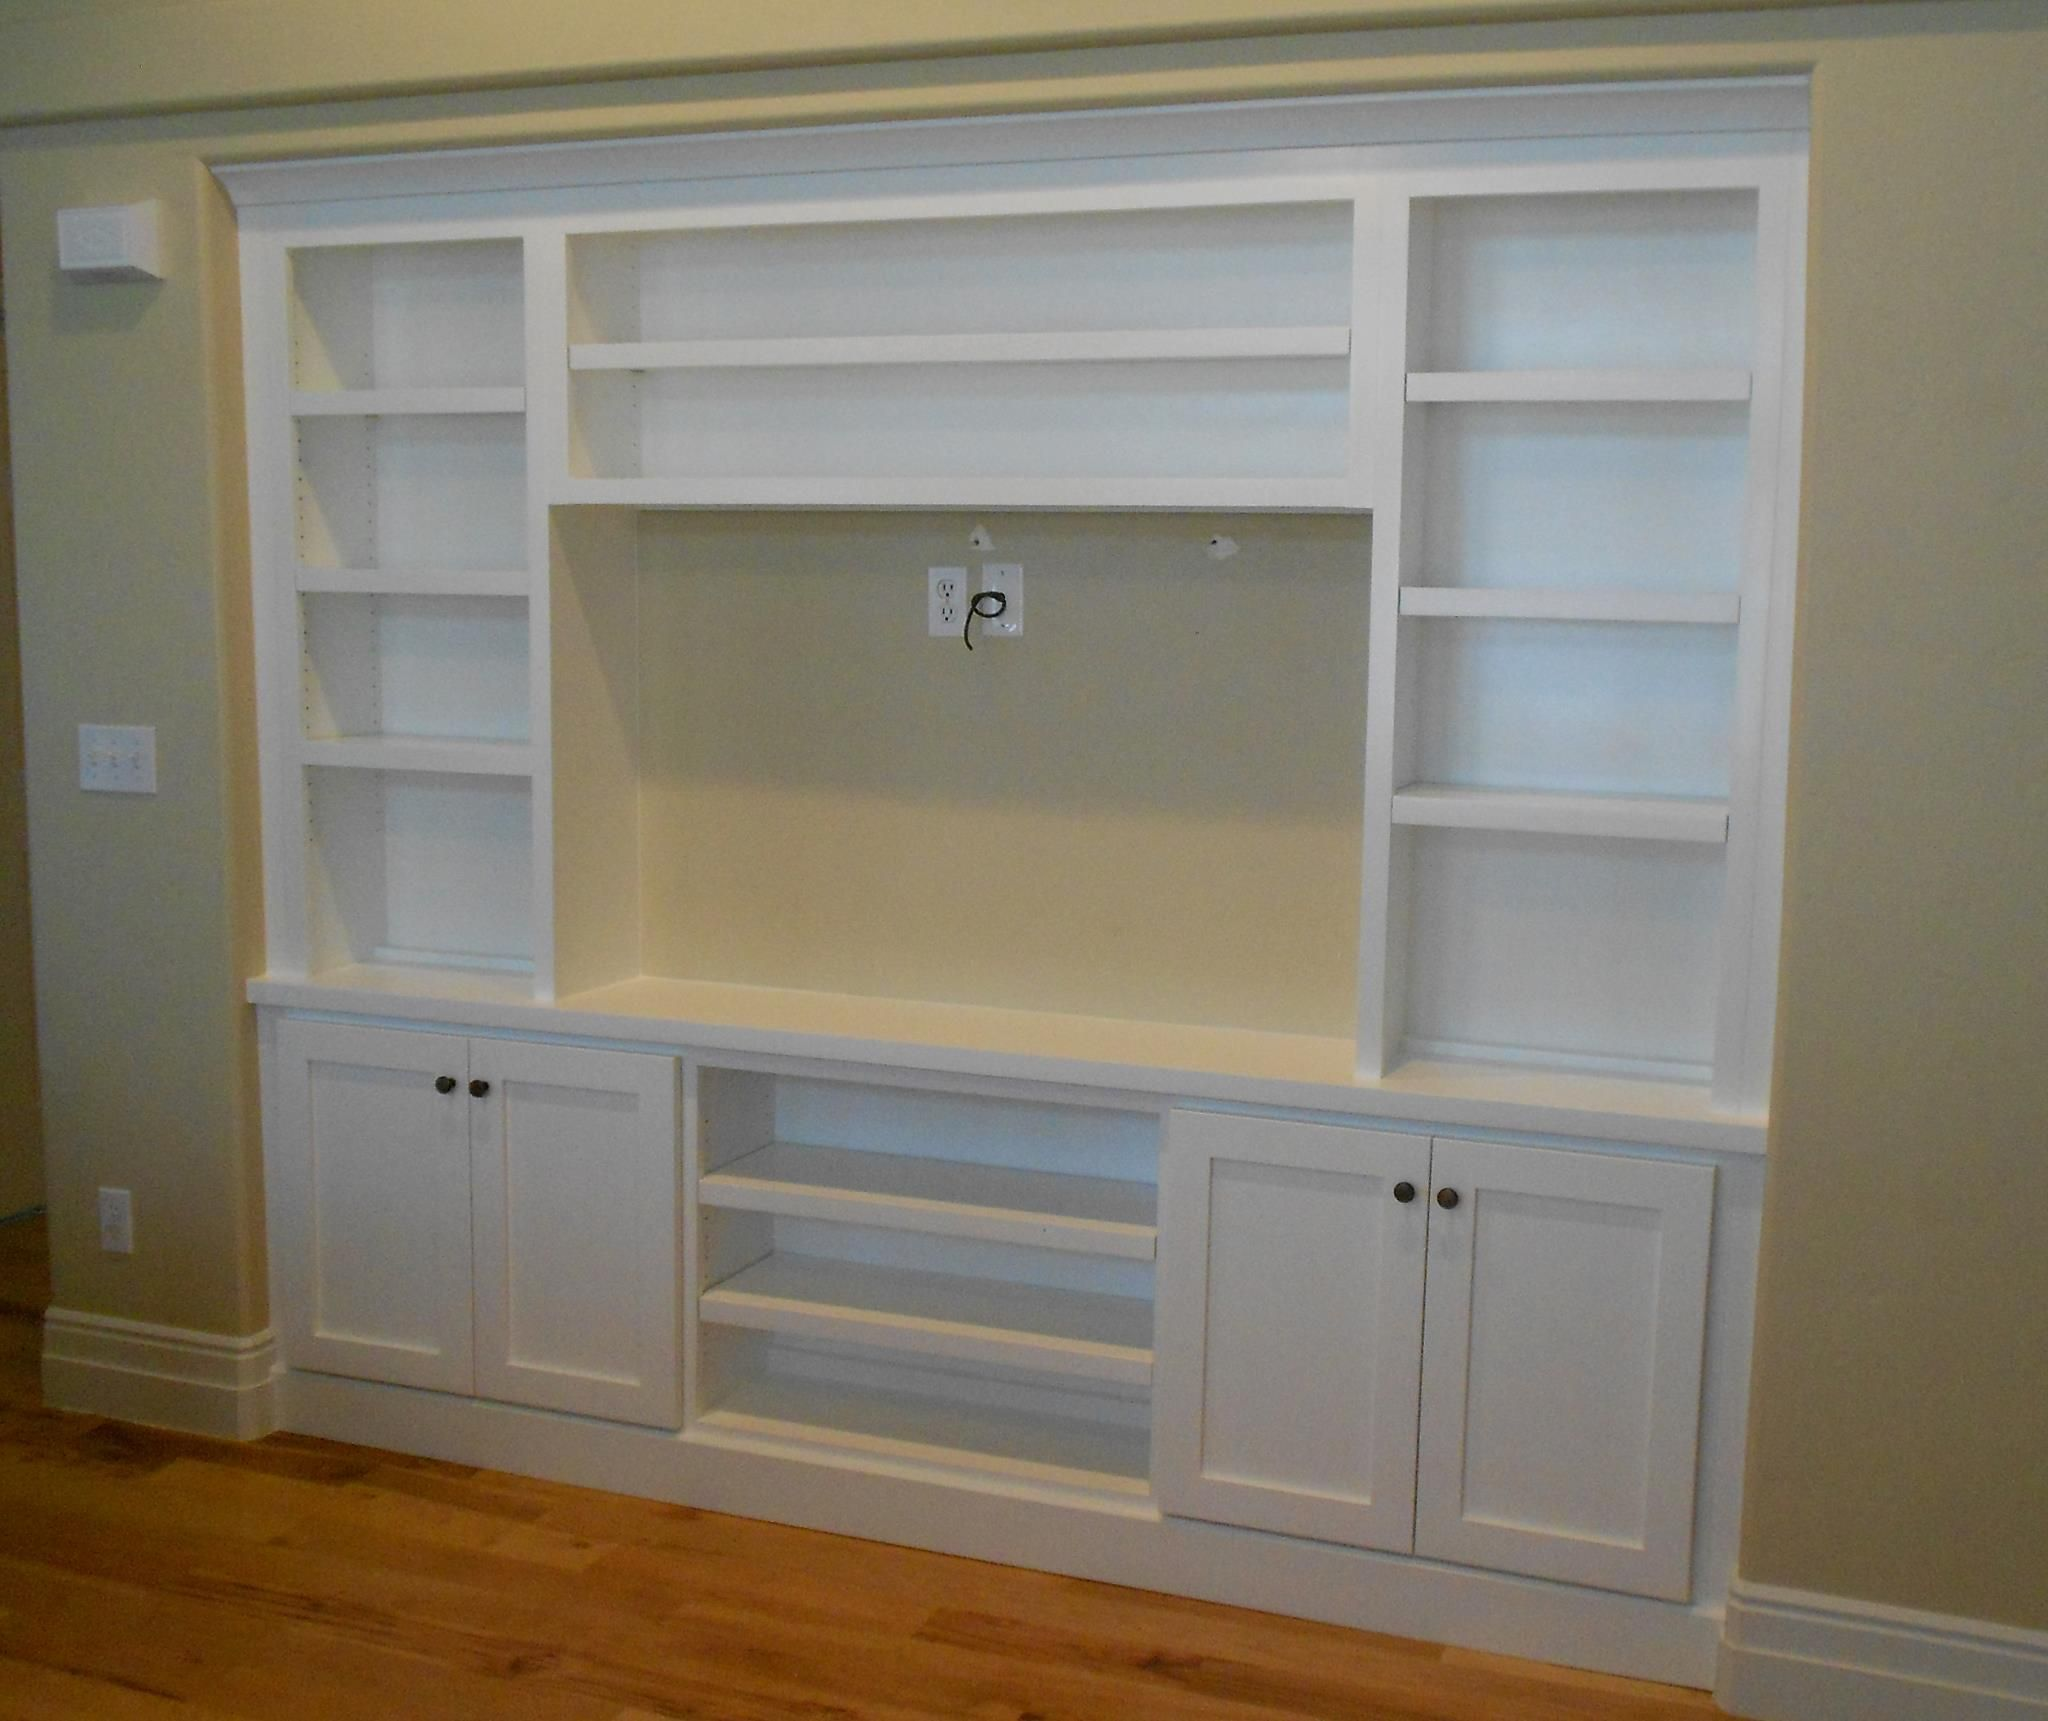 Pin By Sean Manis On Stuff I Ve Made Or Seanswoodworking Com Built In Entertainment Center Home Entertainment Centers Entertainment Center Design